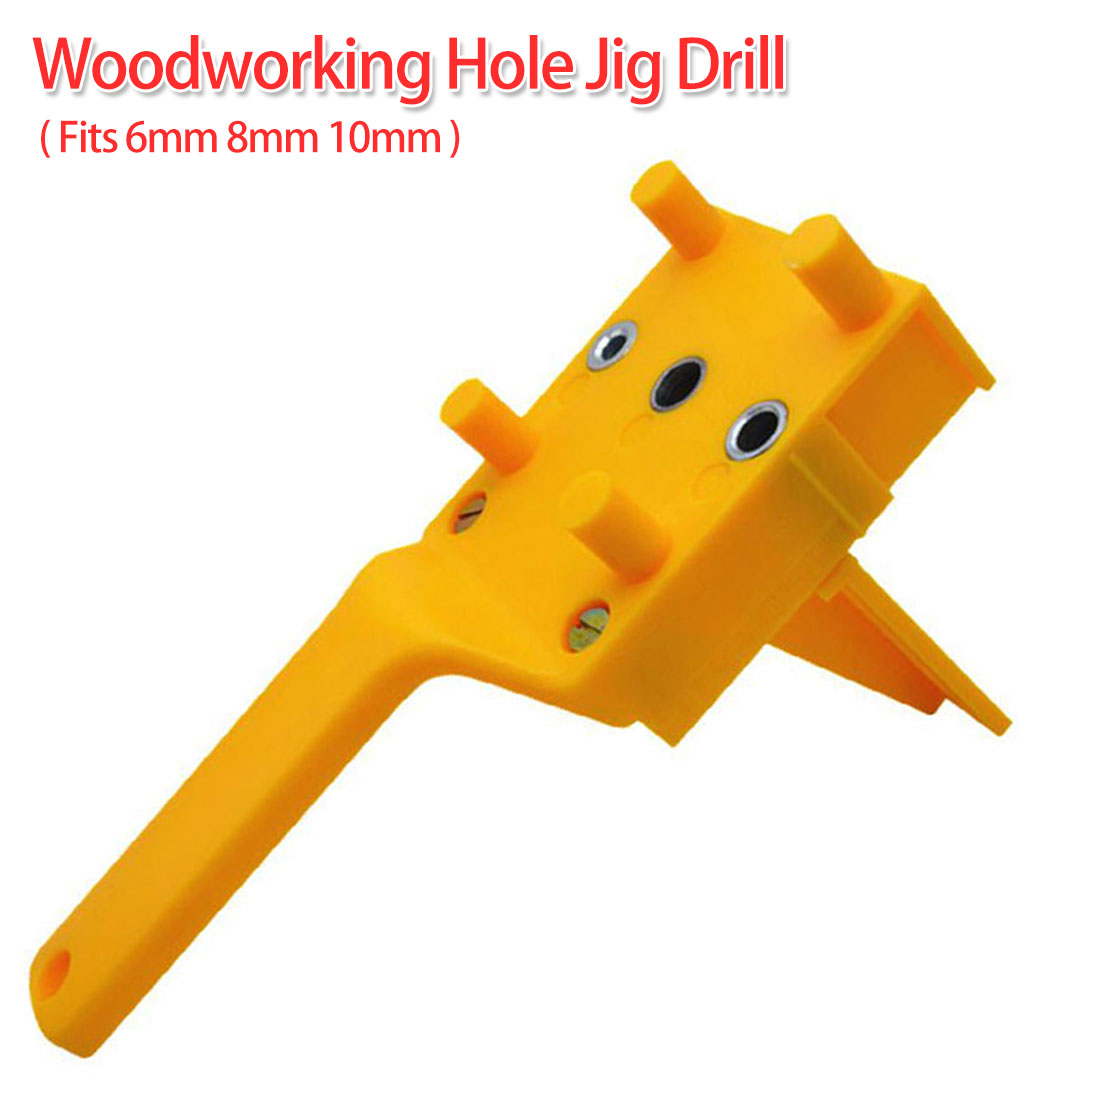 Doweling Jig Drill 6/8/10mm Handheld Pocket Hole Jig Set Woodworking Wood Dowel Self-Centering Puncher Drill Guide Locator